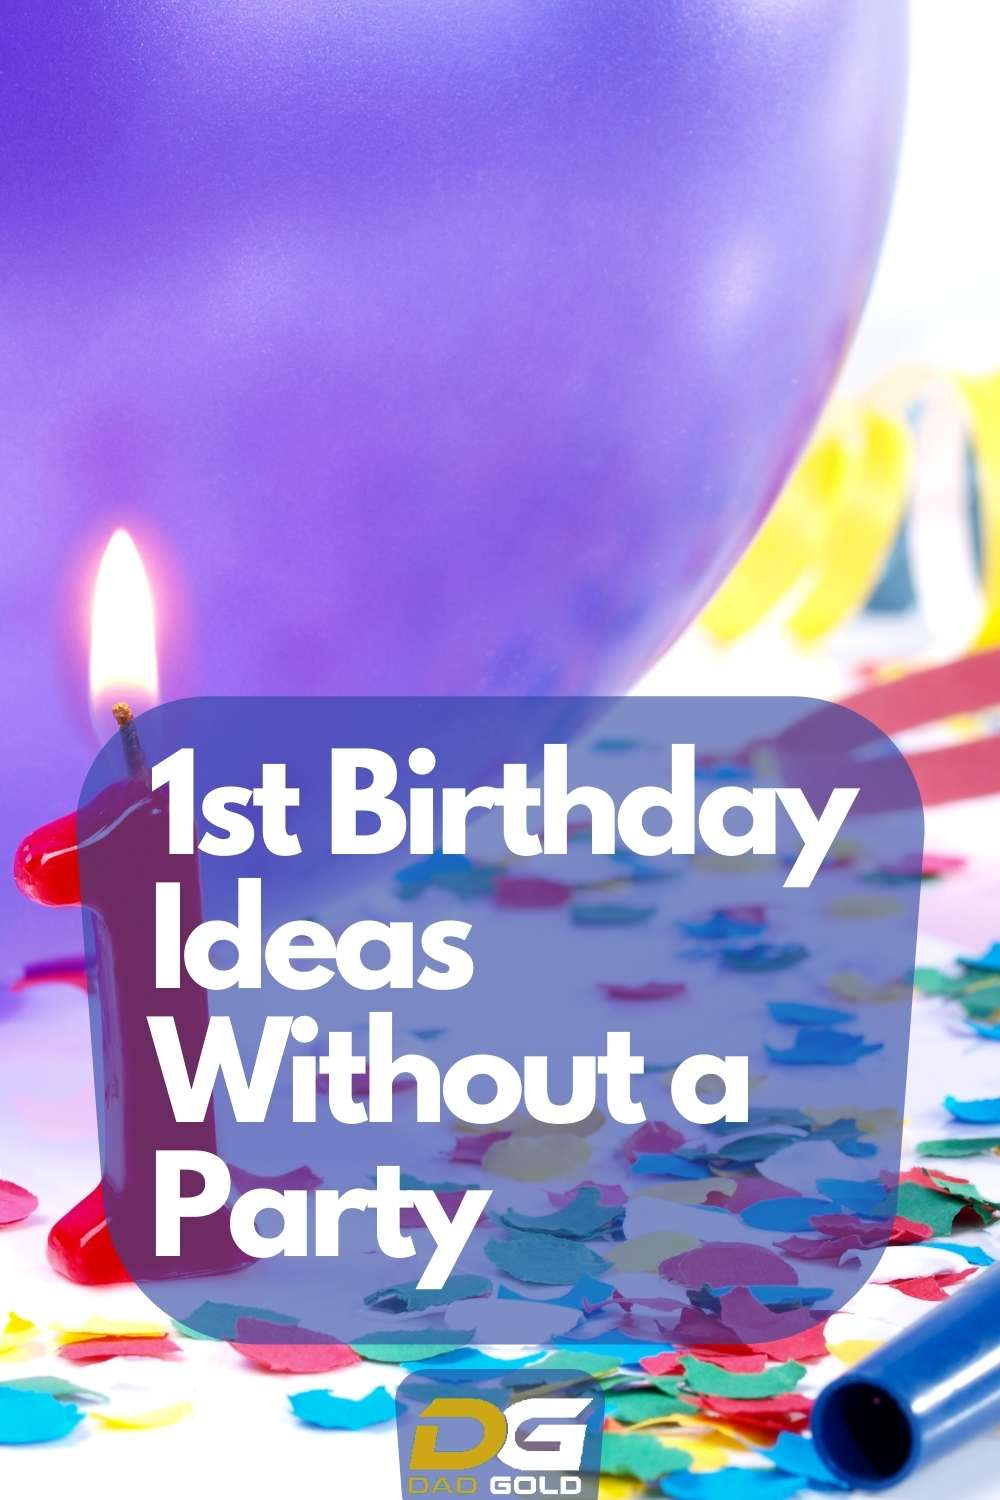 How To Have a 1st Birthday Without a Party